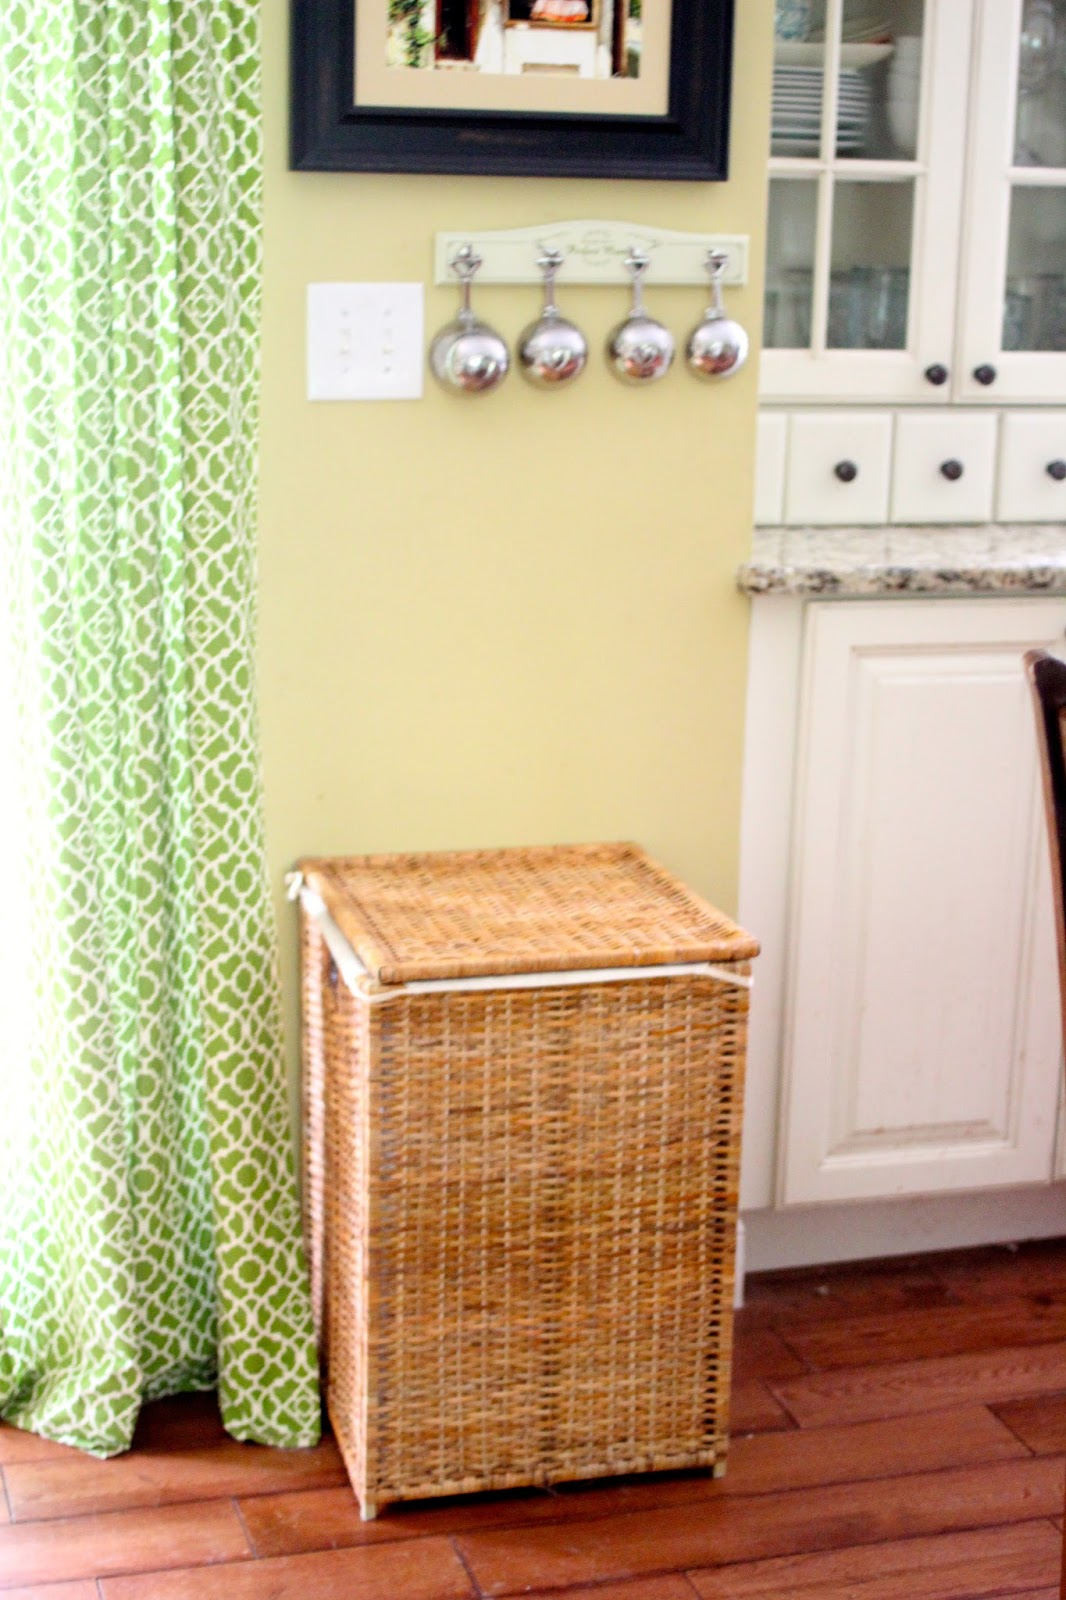 pet food storage in an Ikea wicker h&er via .goldenboysandme.com & Golden Boys and Me: Pet Food Storage